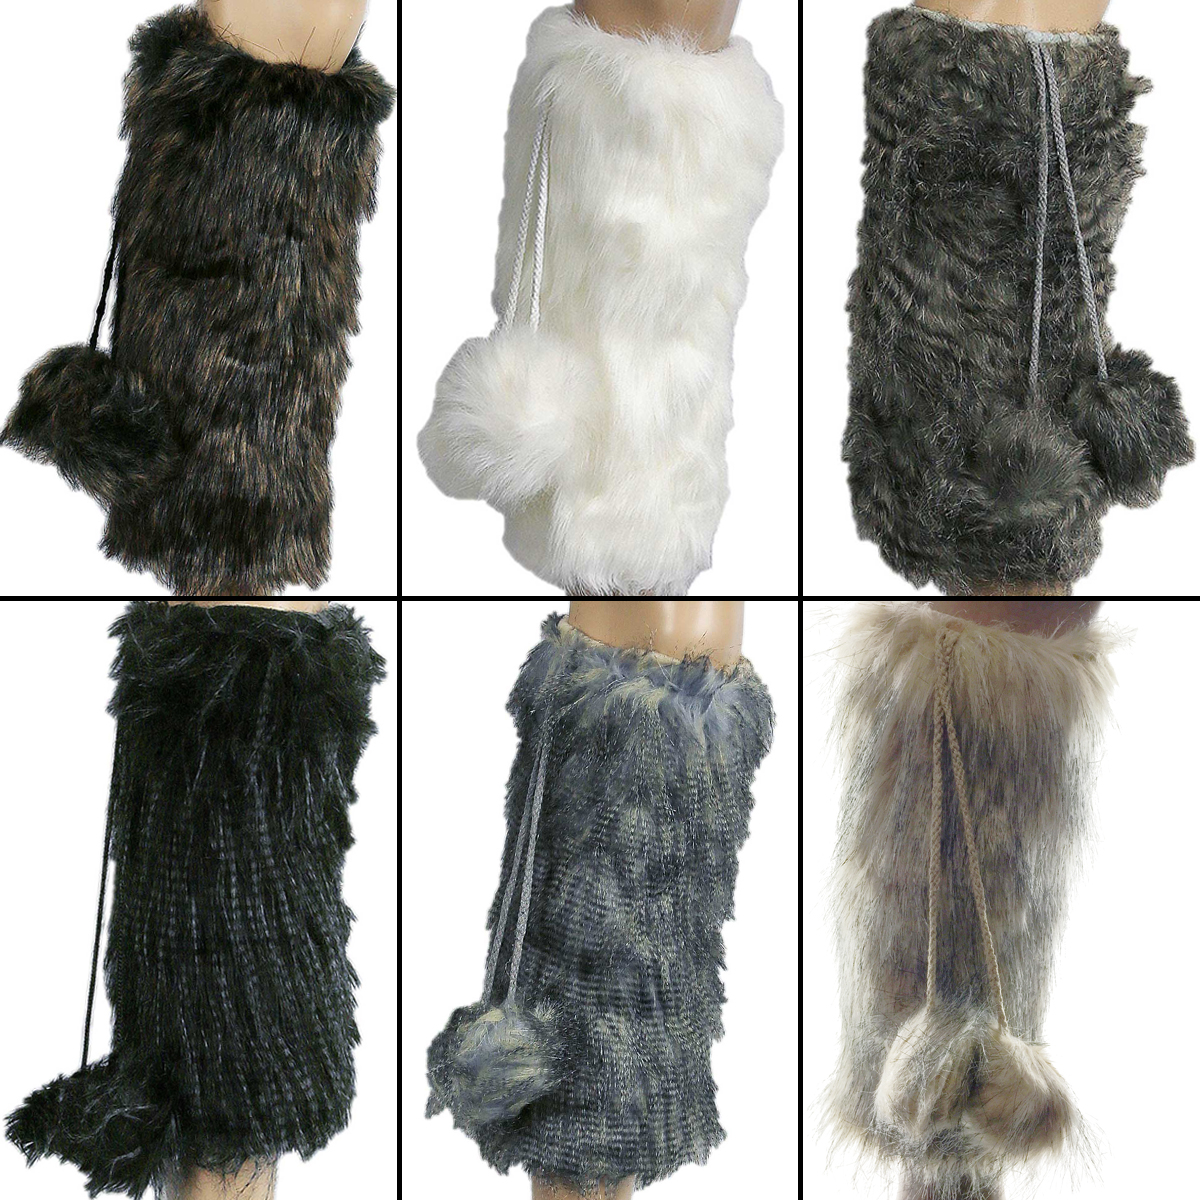 ifavor123.com  Women s Faux Fur Leg Warmers Furry Fuzzy Boots With ... dfd1158f4